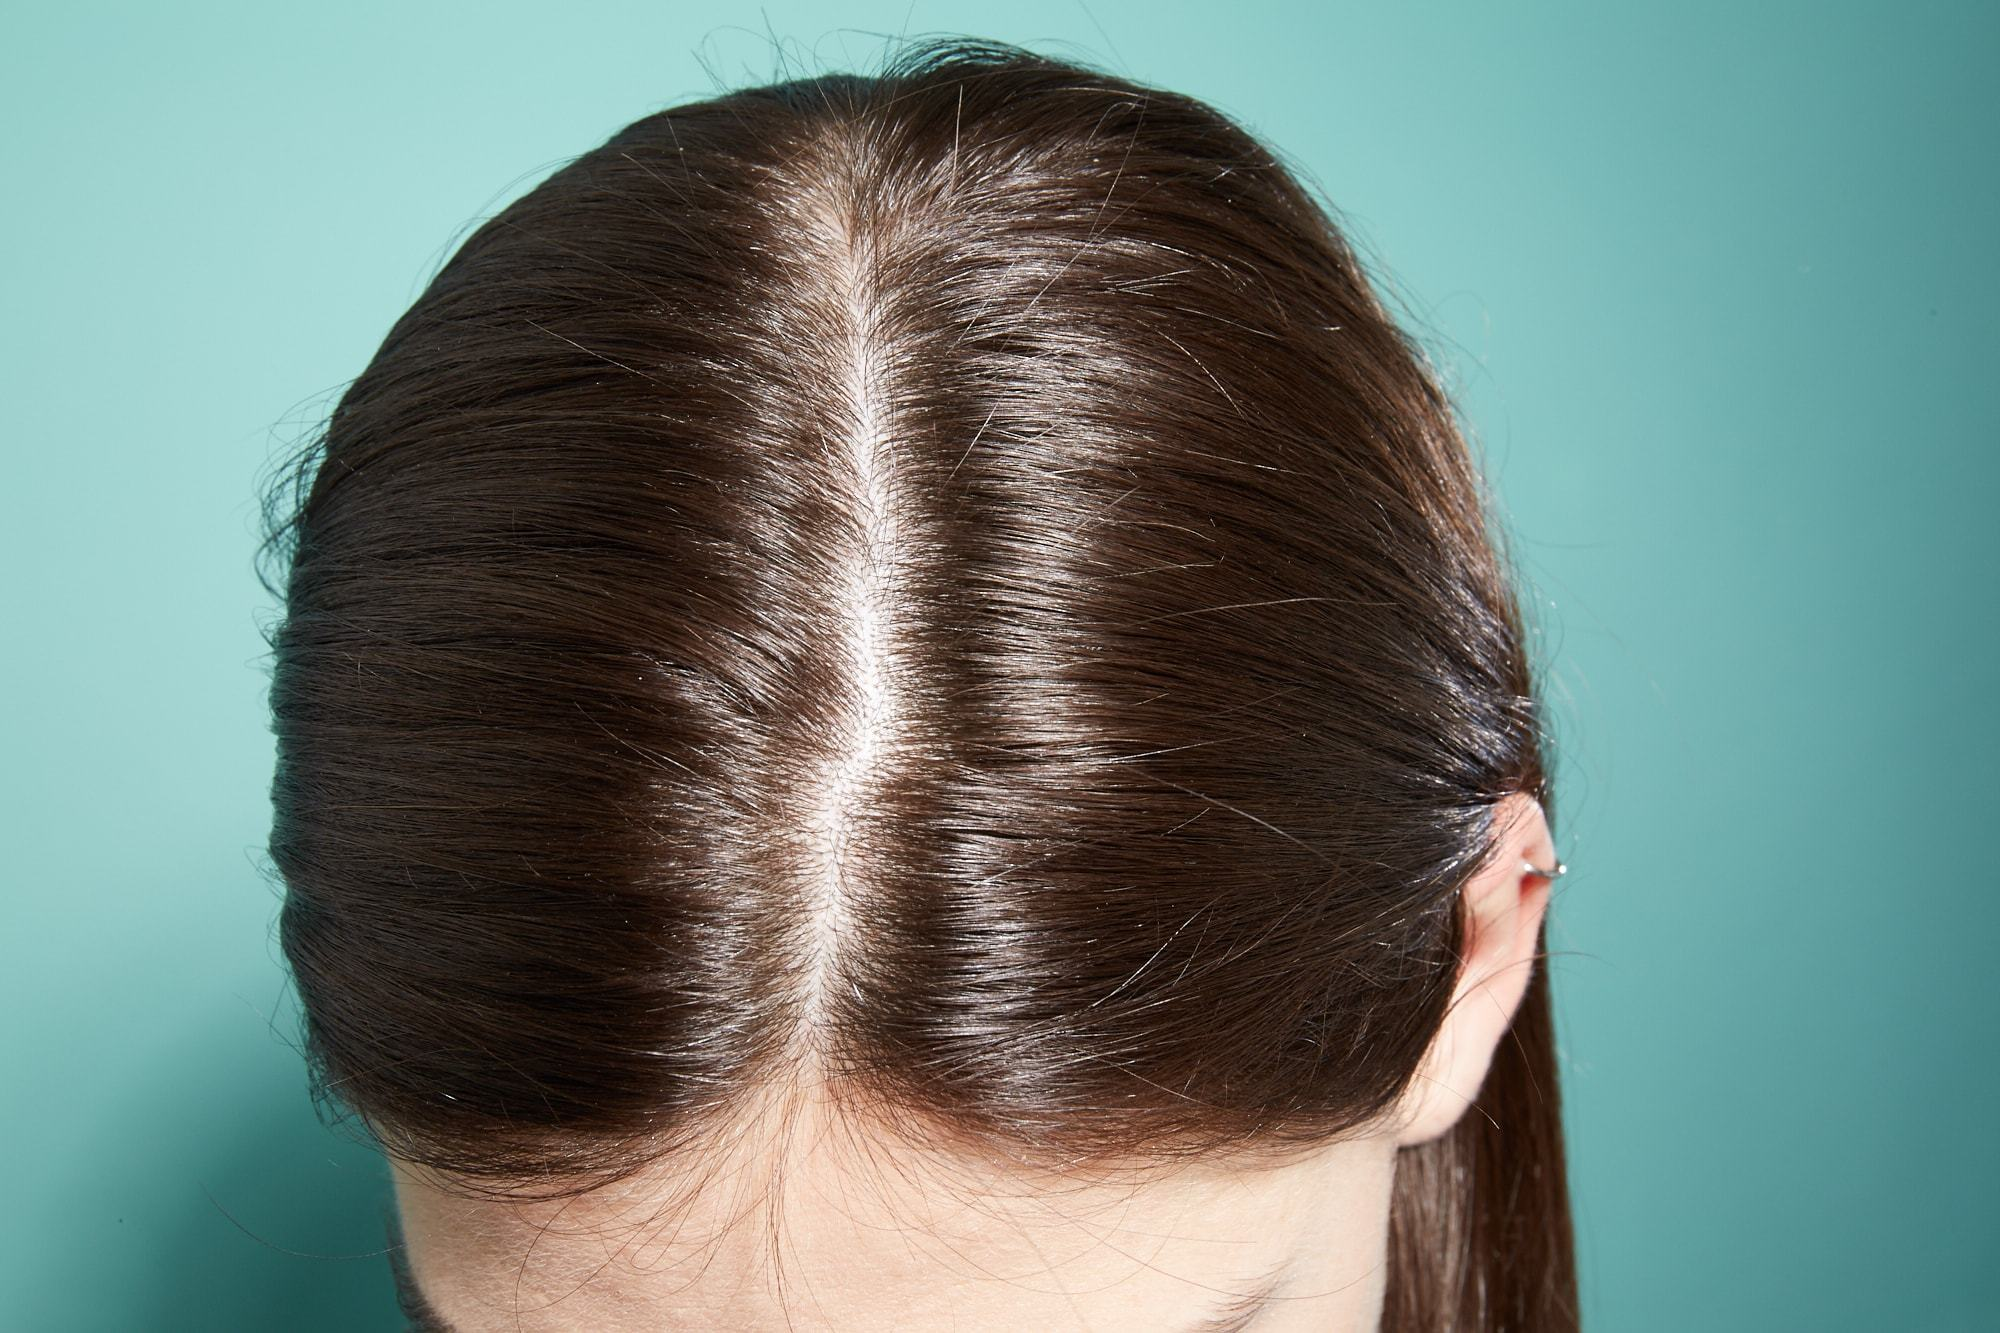 Itchy scalp causes: Close-up image of a brunette woman's scalp